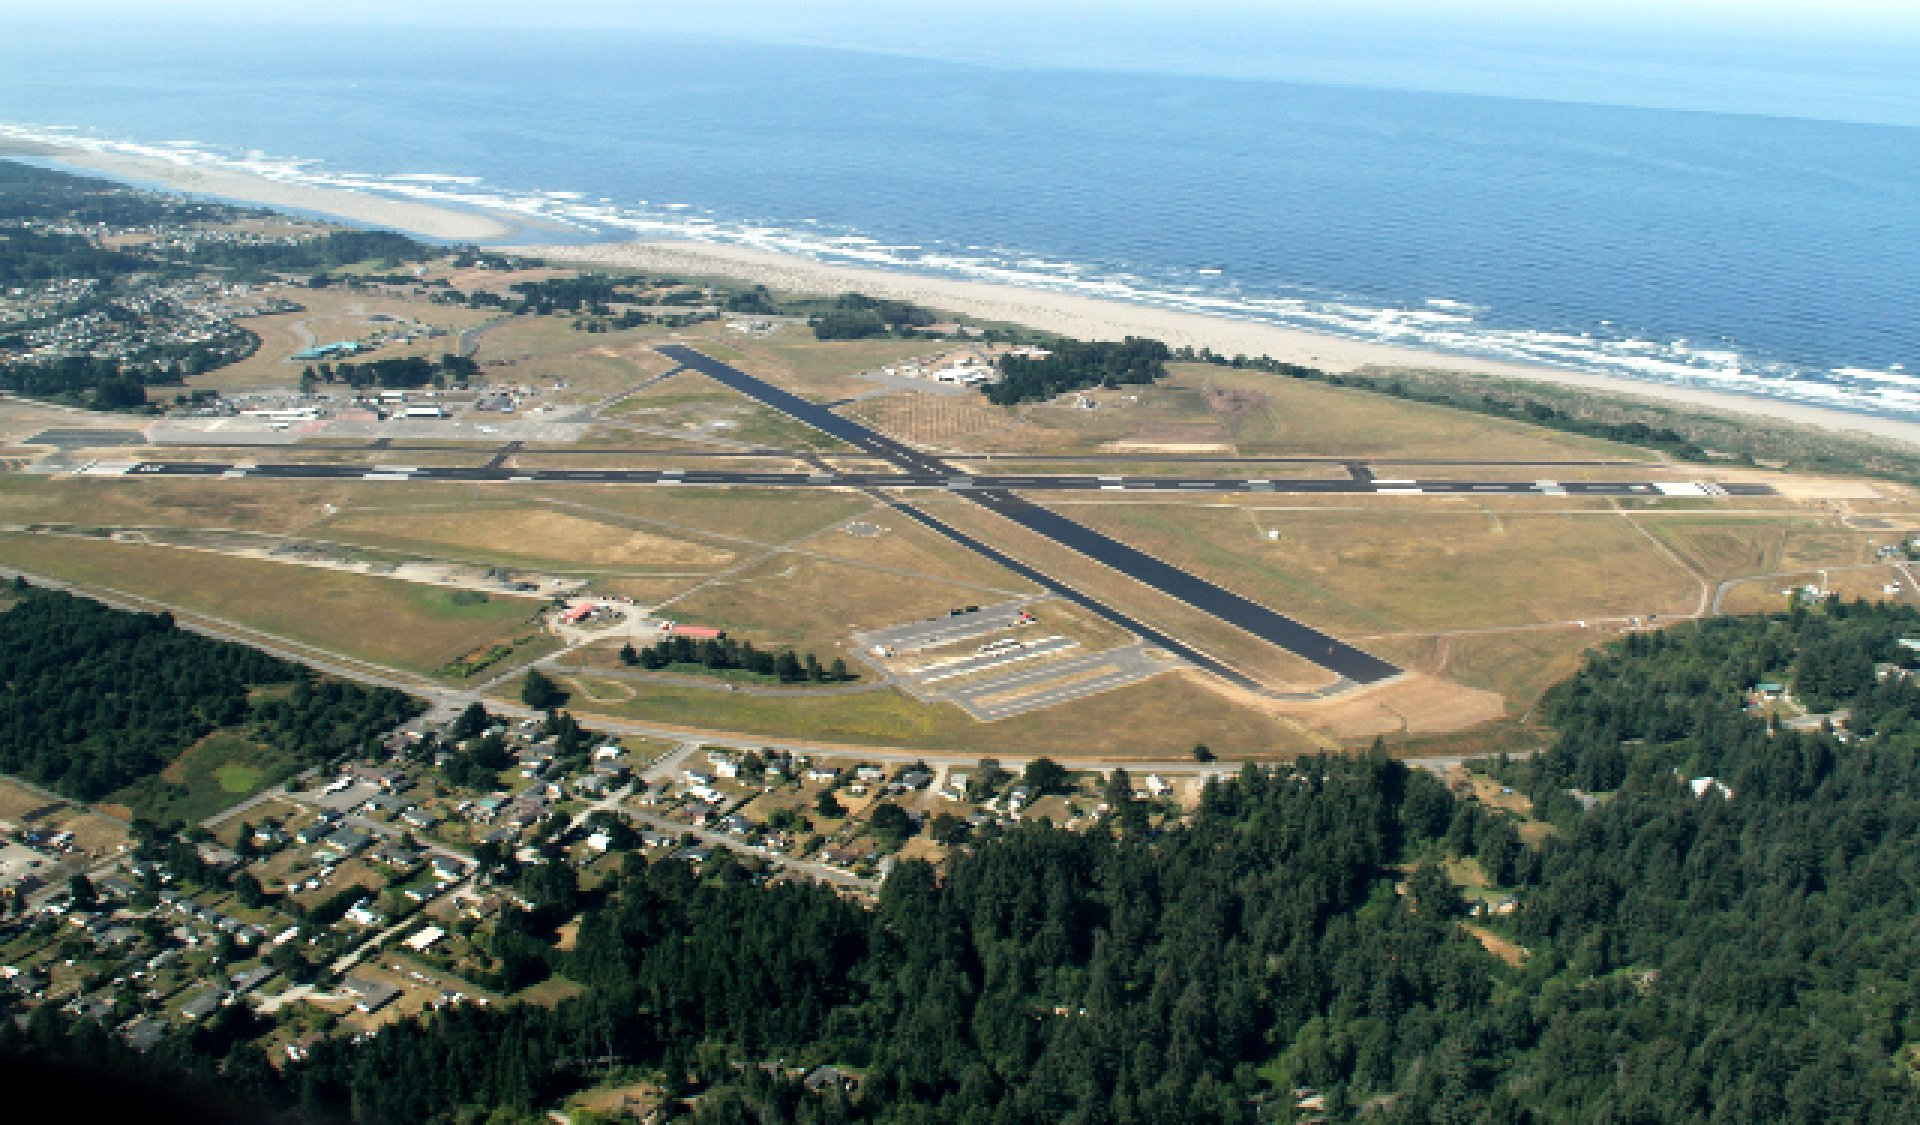 An aerial view of Arcata-Eureka Airport in Humboldt County, California. Courtesy of Humboldt State University.